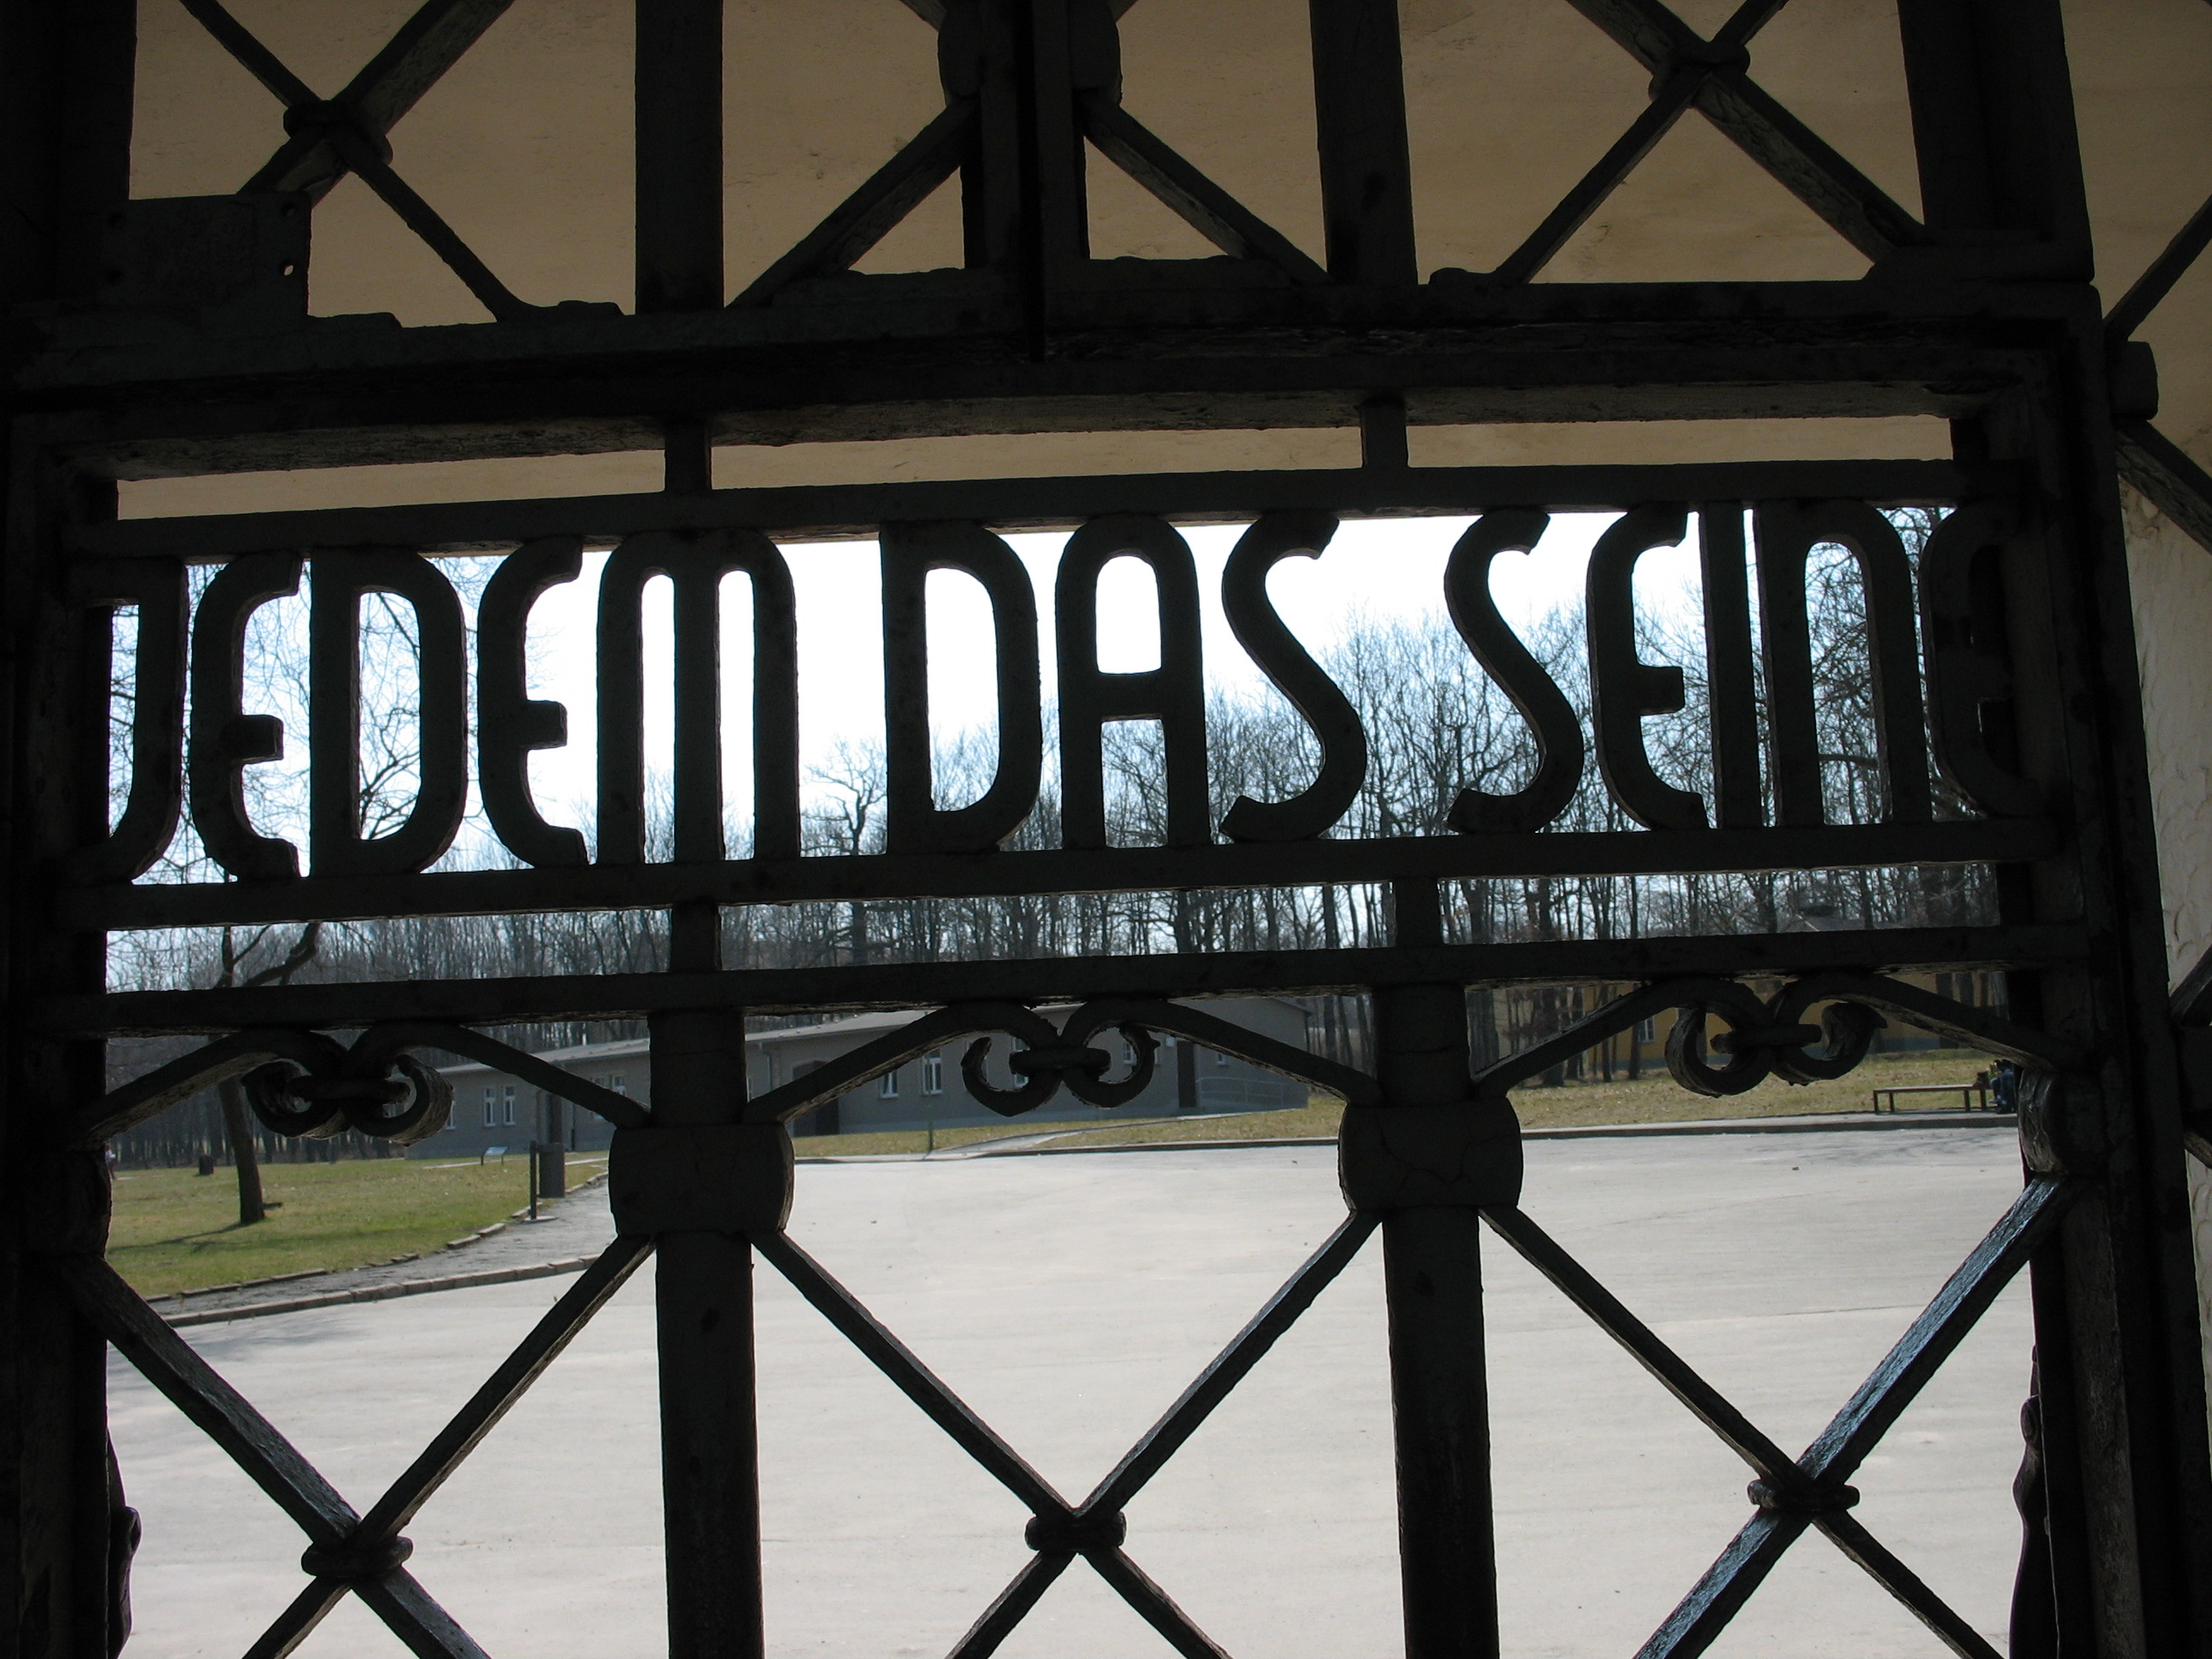 Buchenwald concentration camp - Military Wiki